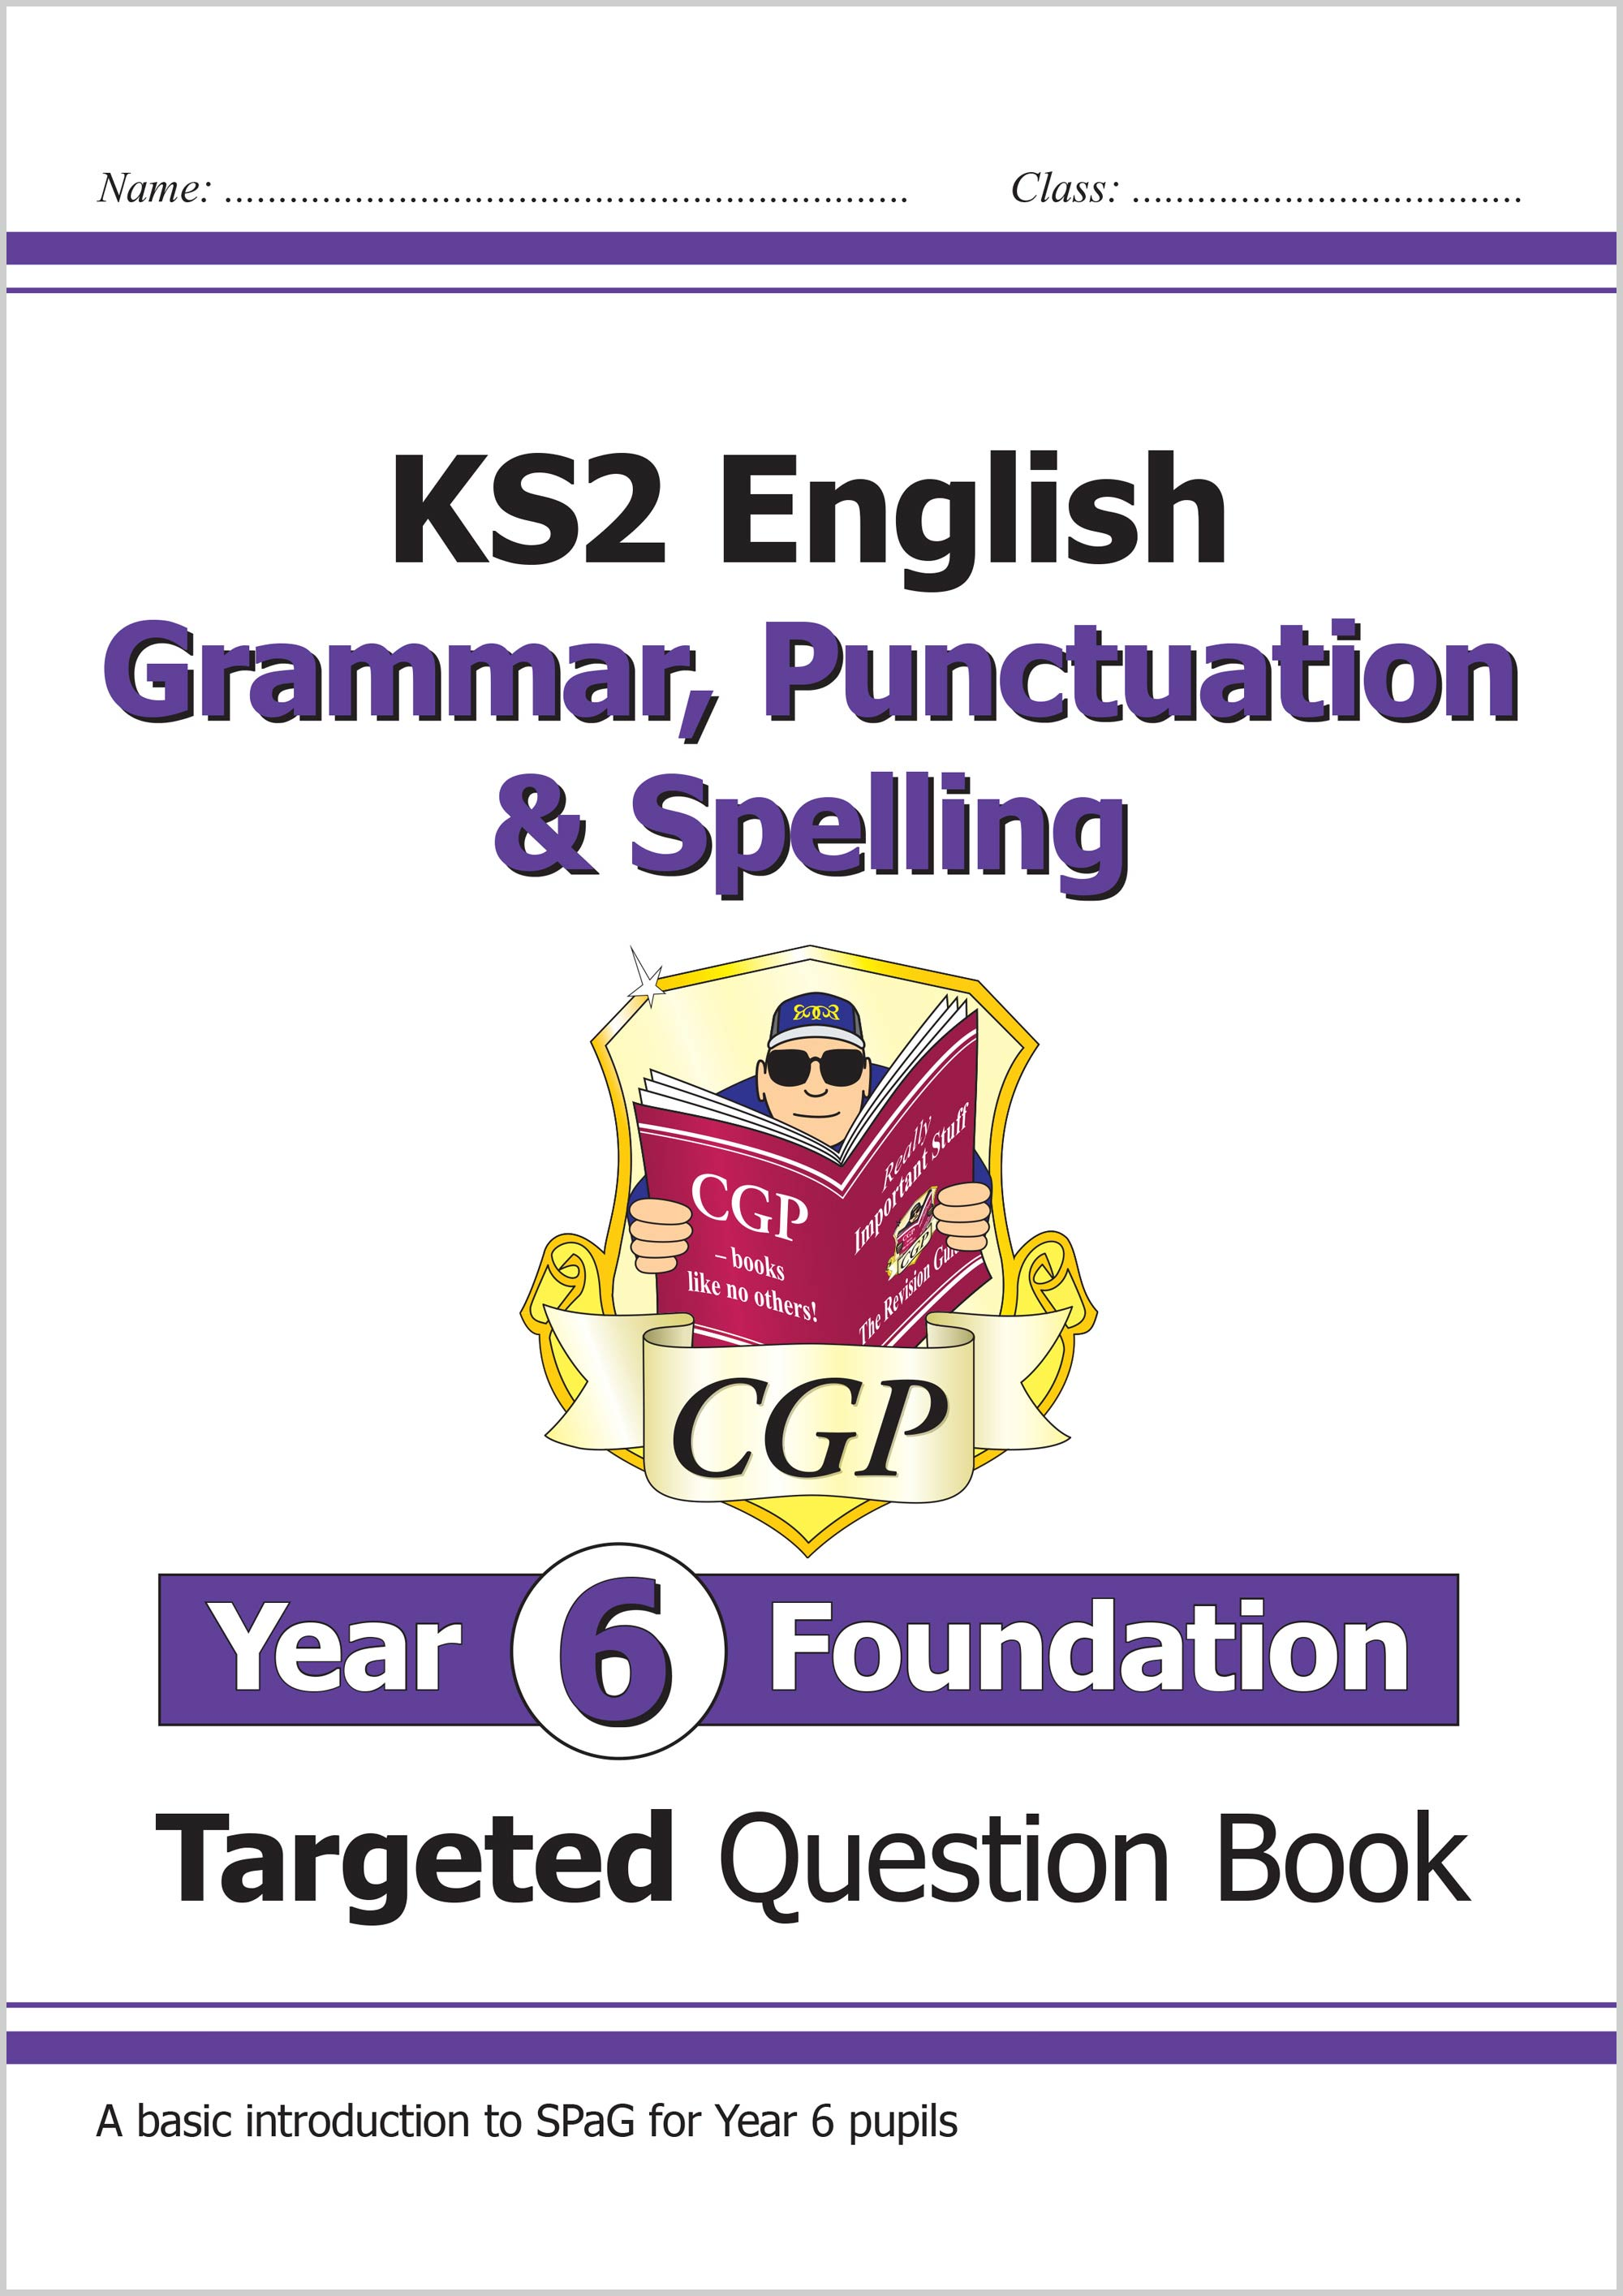 EG6FW21 - KS2 English Targeted Question Book: Grammar, Punctuation & Spelling - Year 6 Foundation